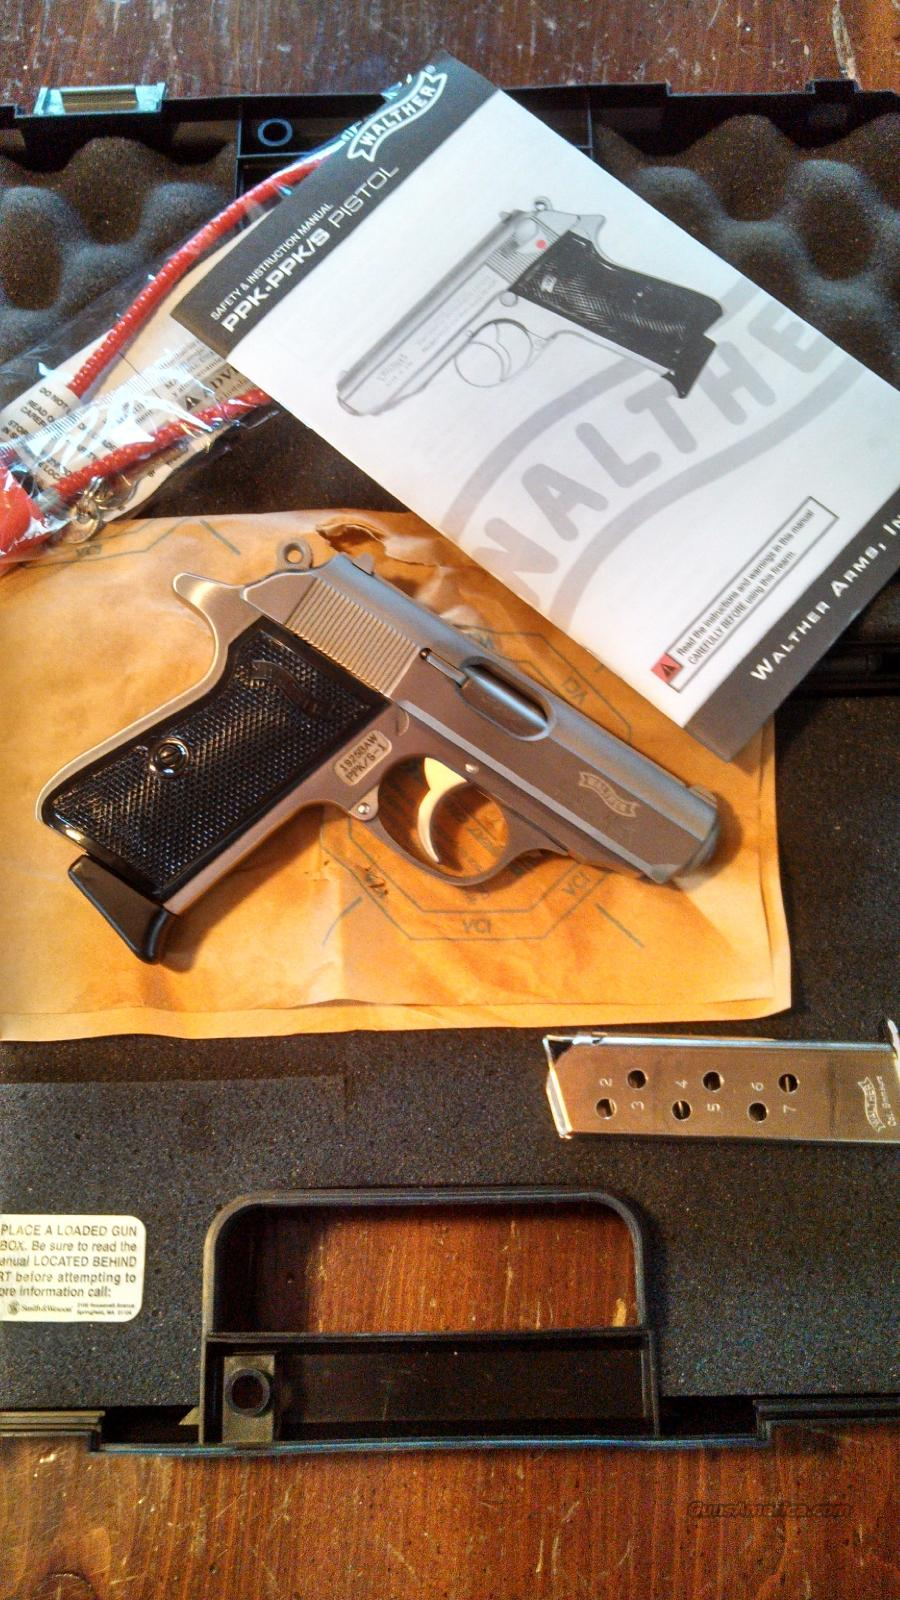 Walther PPK/S .380 ACP/9mm Kurz Stainless 2246004   Guns > Pistols > Walther Pistols > Post WWII > PPK Series